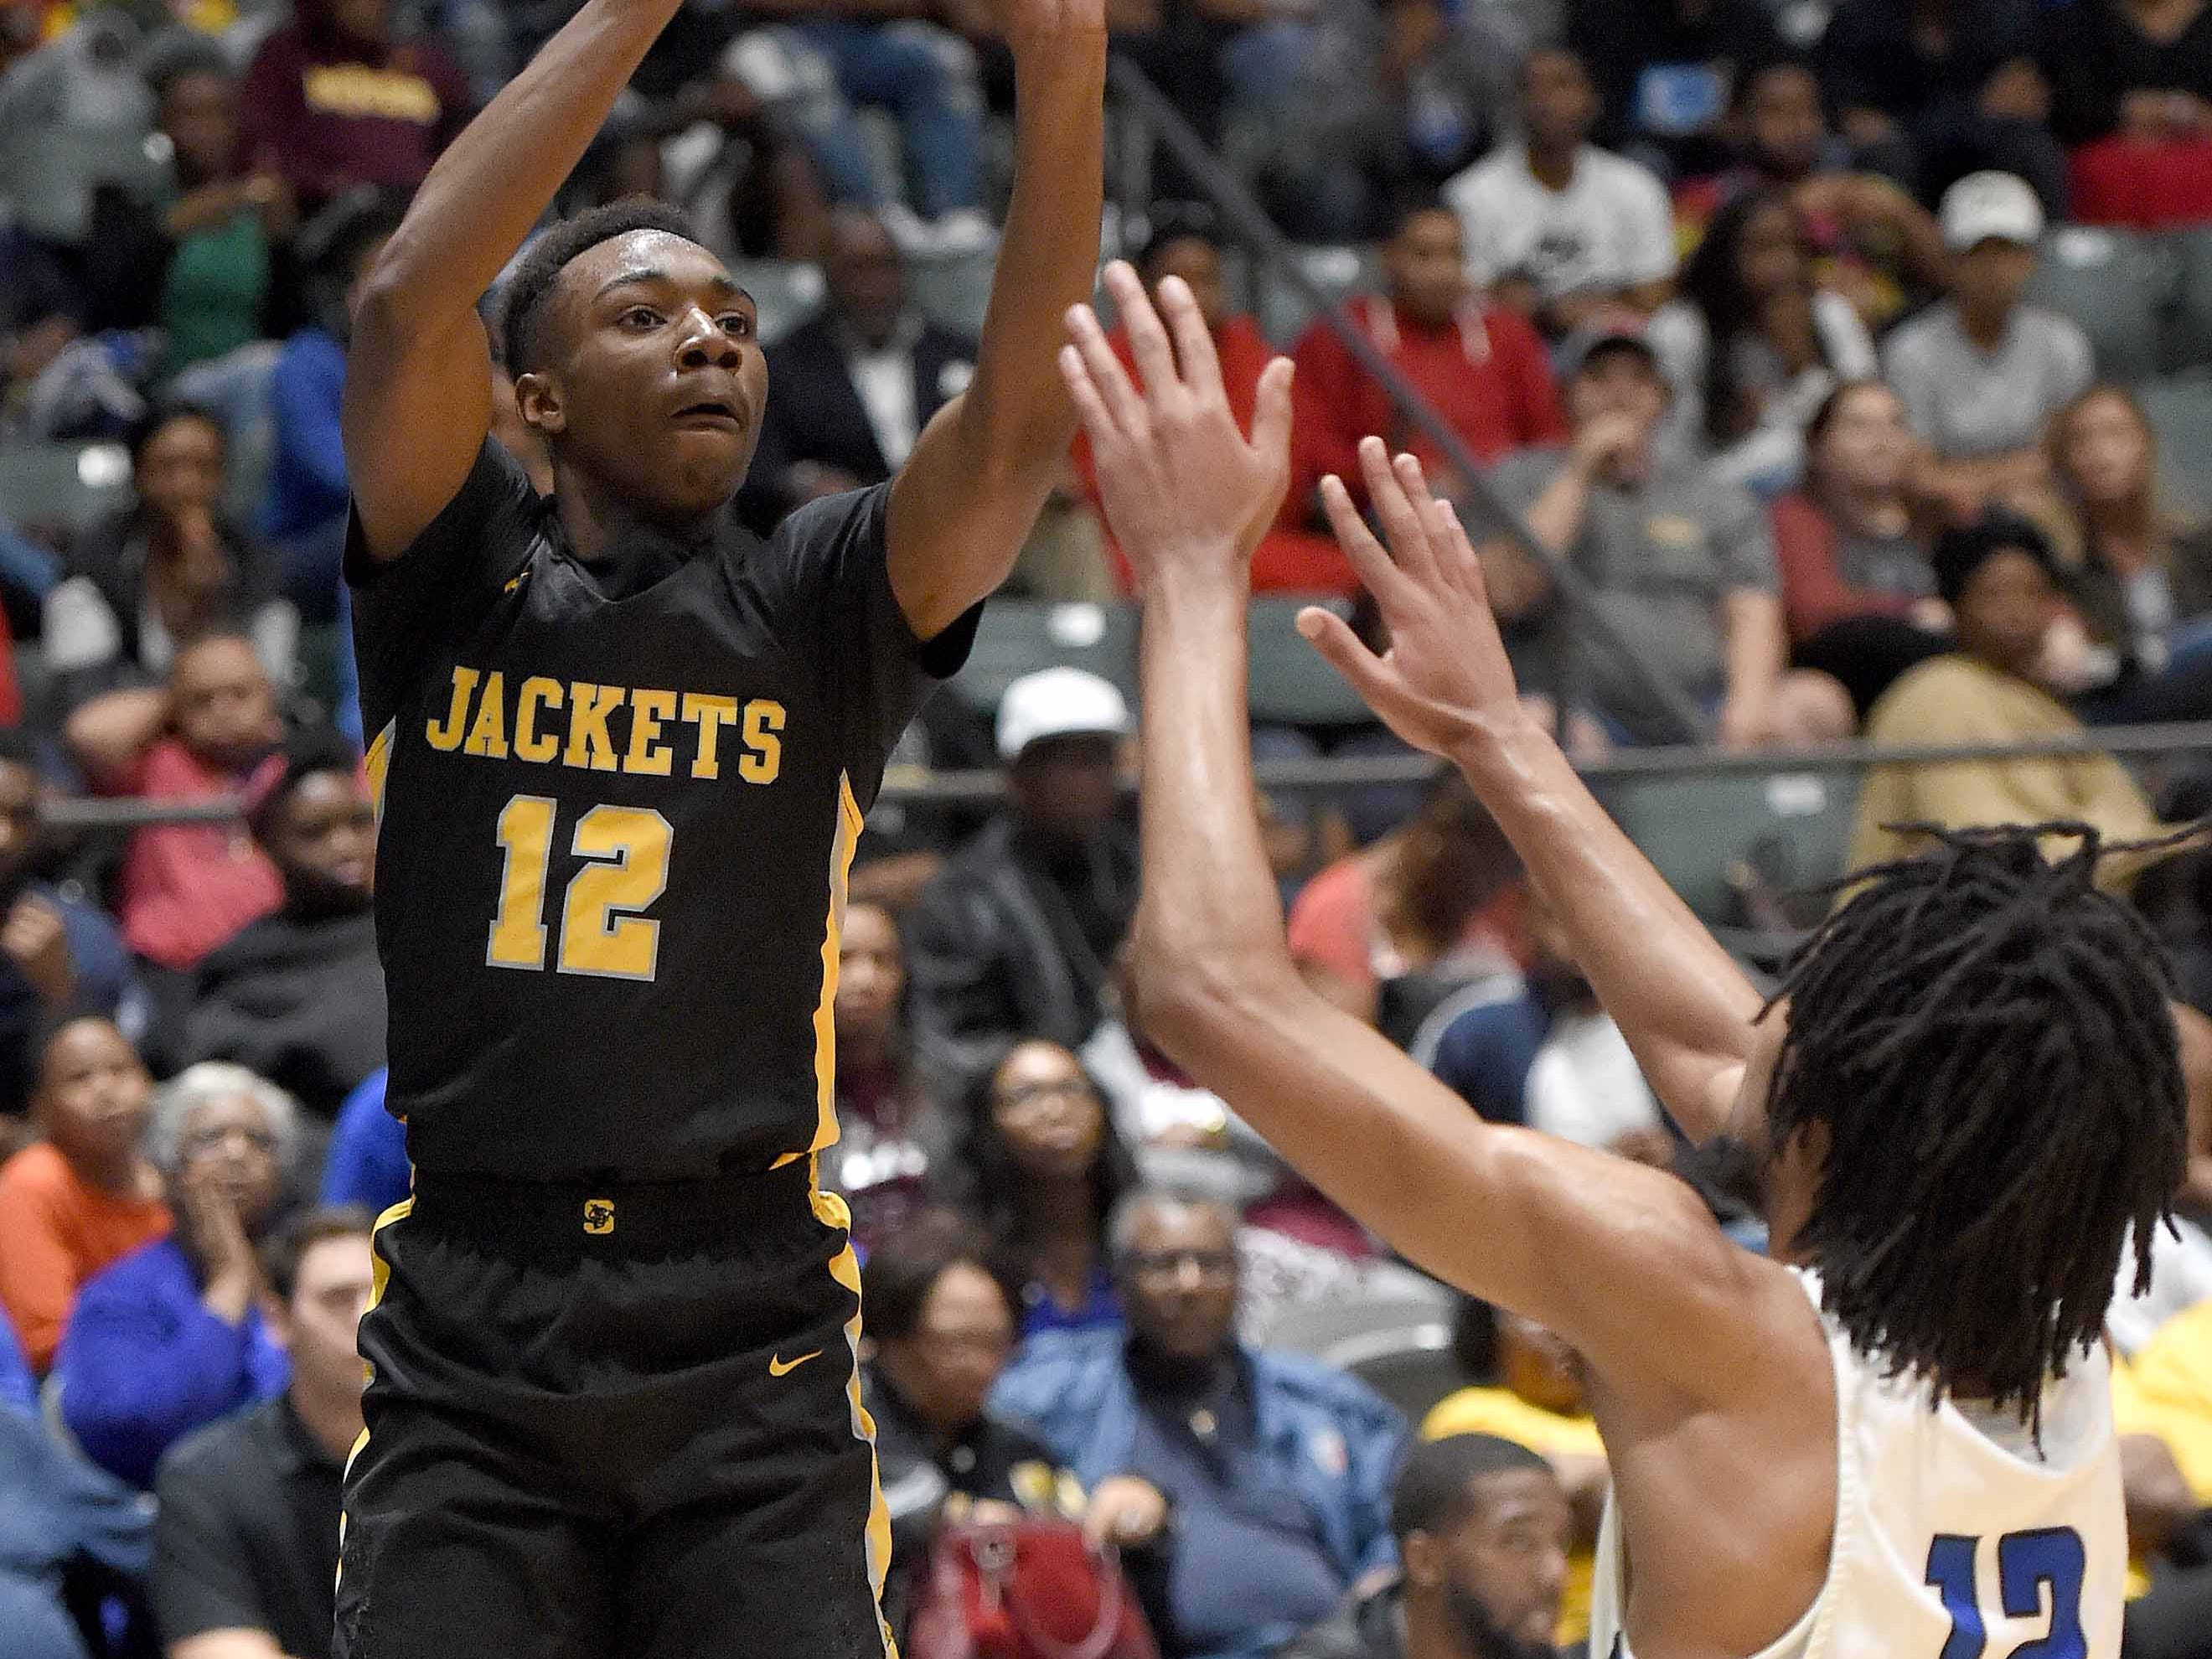 Starkville's Coltie Young (left) shoots over Meridian's Vontrell Pringle in the Class 6A finals of the MHSAA C Spire State Basketball Championships at the Mississippi Coliseum in Jackson, Miss., on Saturday, March 9, 2019.